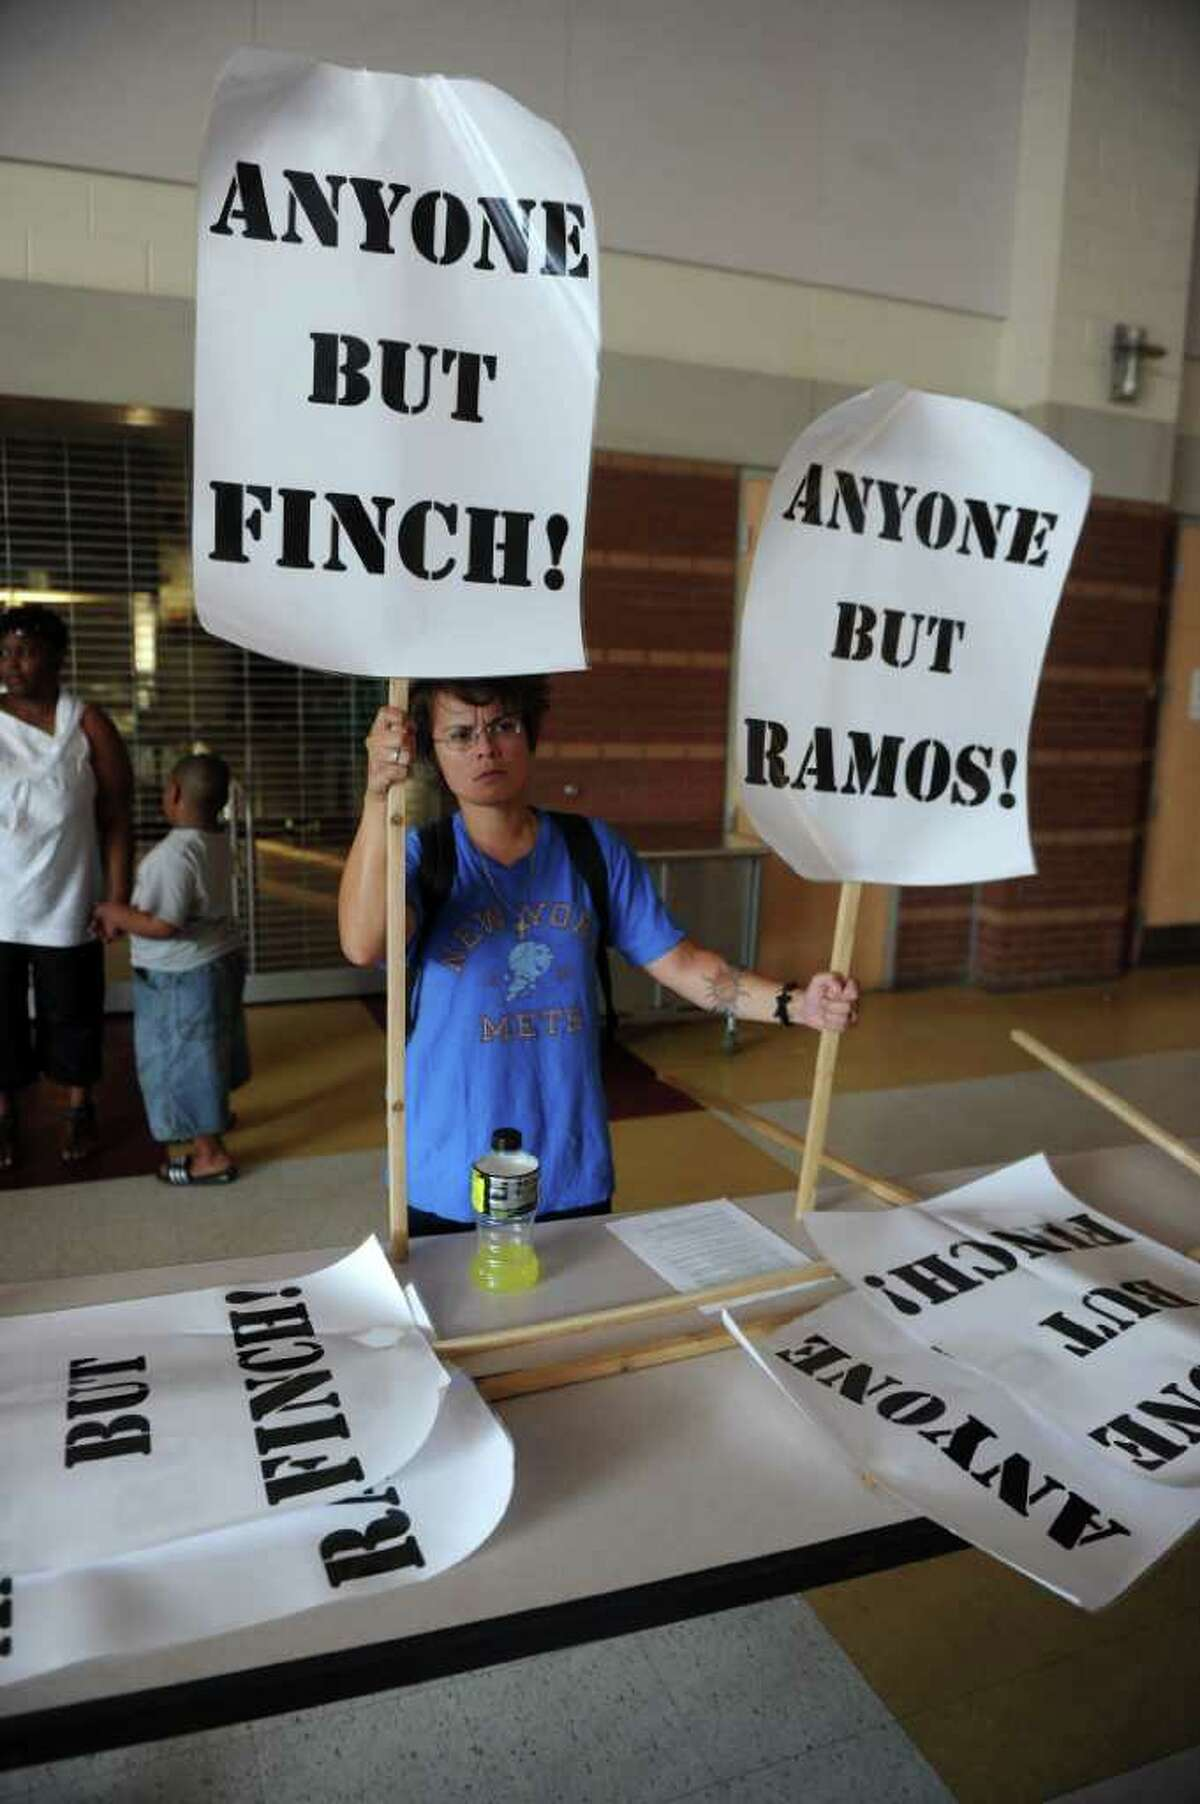 Cat Vendryes-Martin hold up signs protesting the Mayor Bill Finch and Superintendant of School Dr. John Ramos during a special meeting of the Bridgeport Board of Education was held at Cesar A. Batalla Elementary School in Bridgeport, Conn. on Tuesday July 5, 2011.